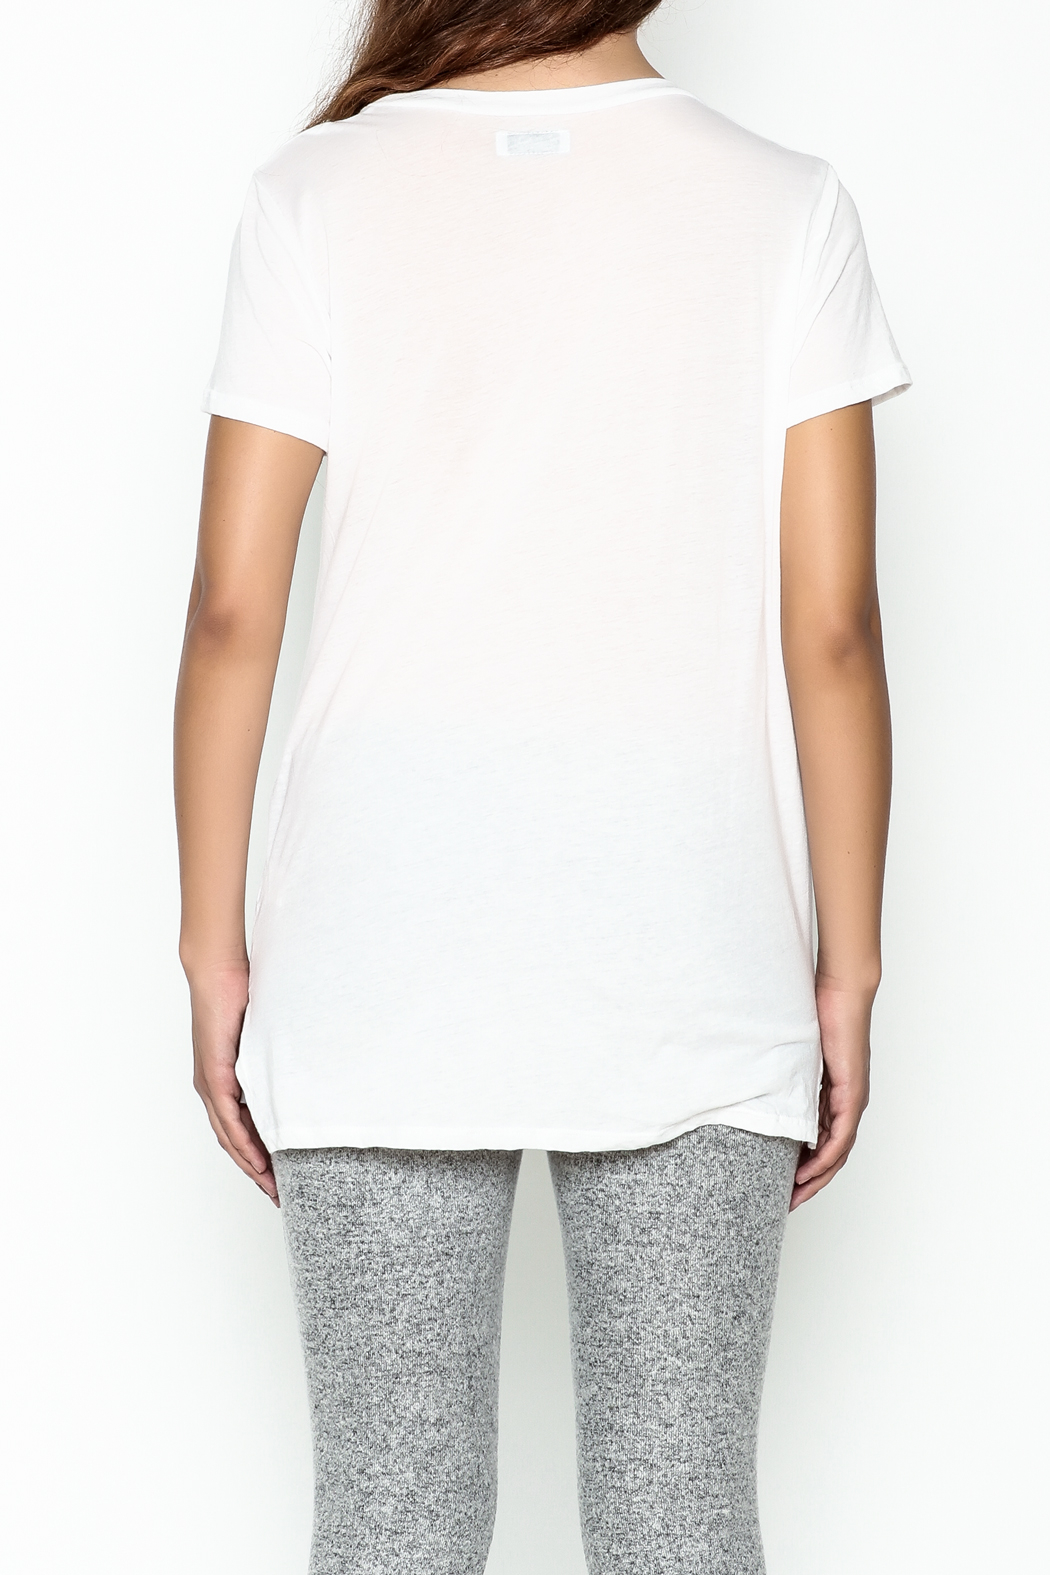 Lauren Moshi V Neck Graphic Tee - Back Cropped Image